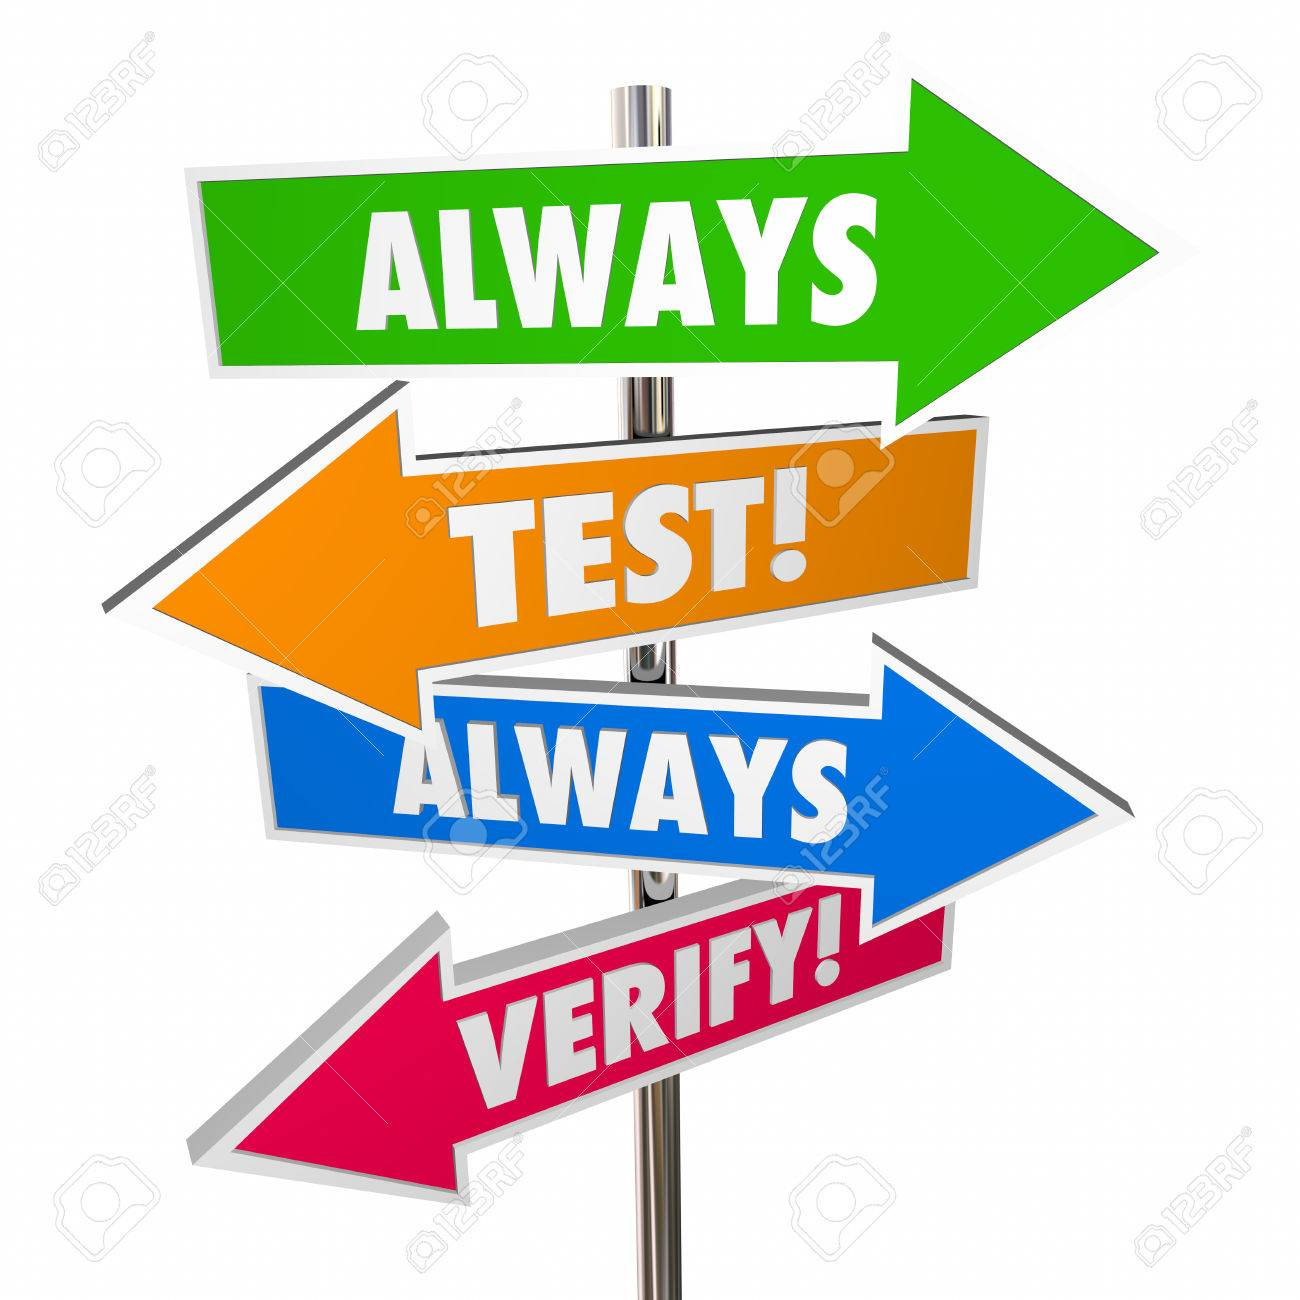 Always test verify assumptions. Hypothesis clipart